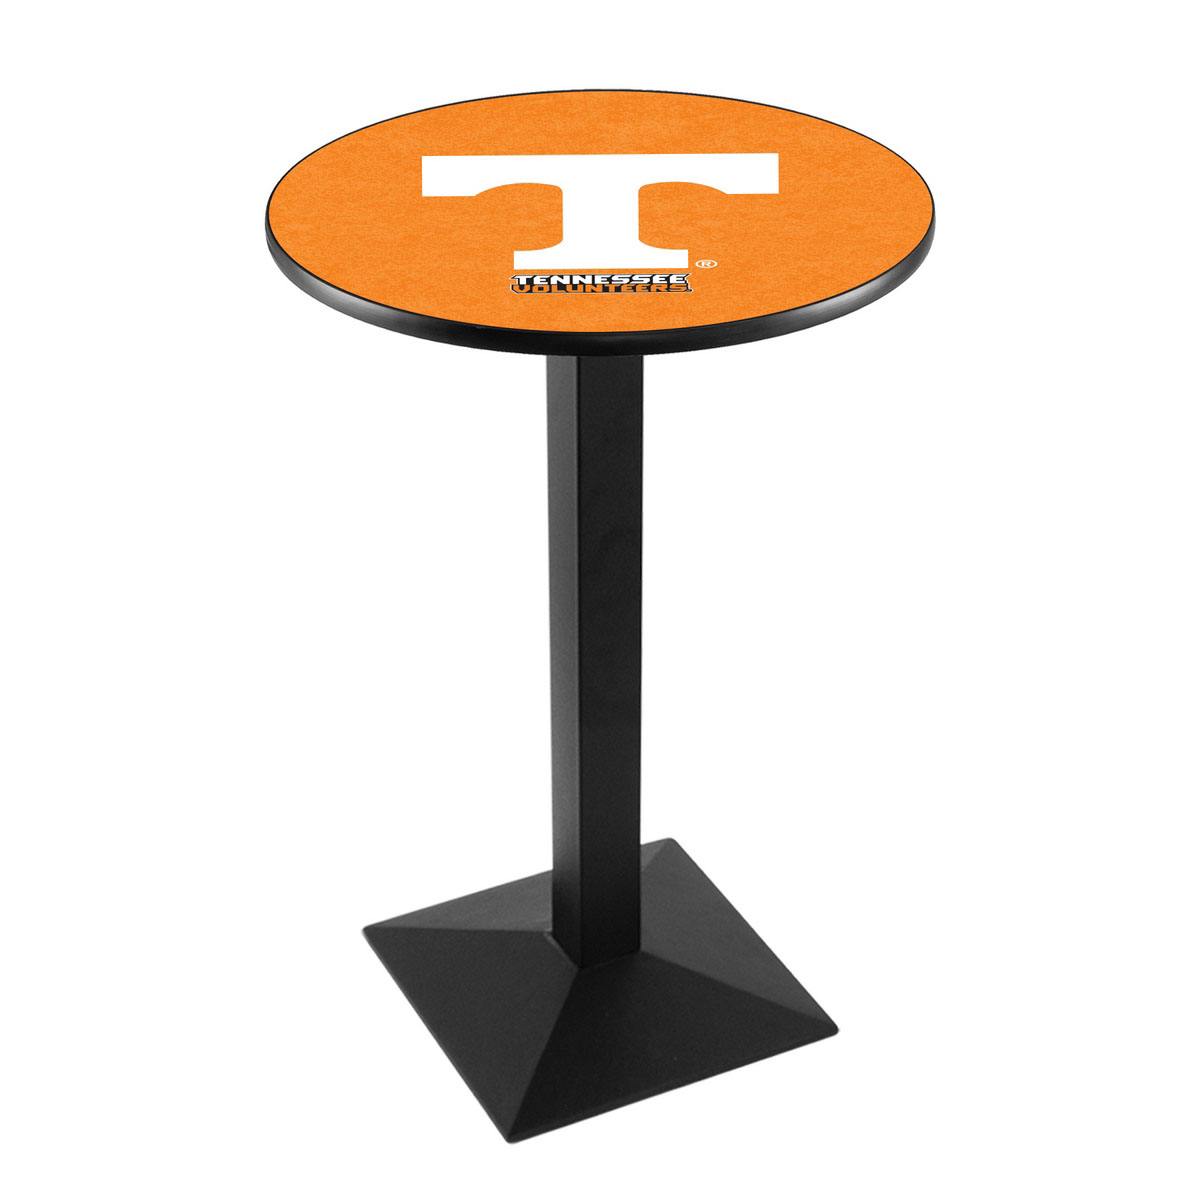 Stylish University Tennessee Logo Pub Bar Table Square Stand Product Photo